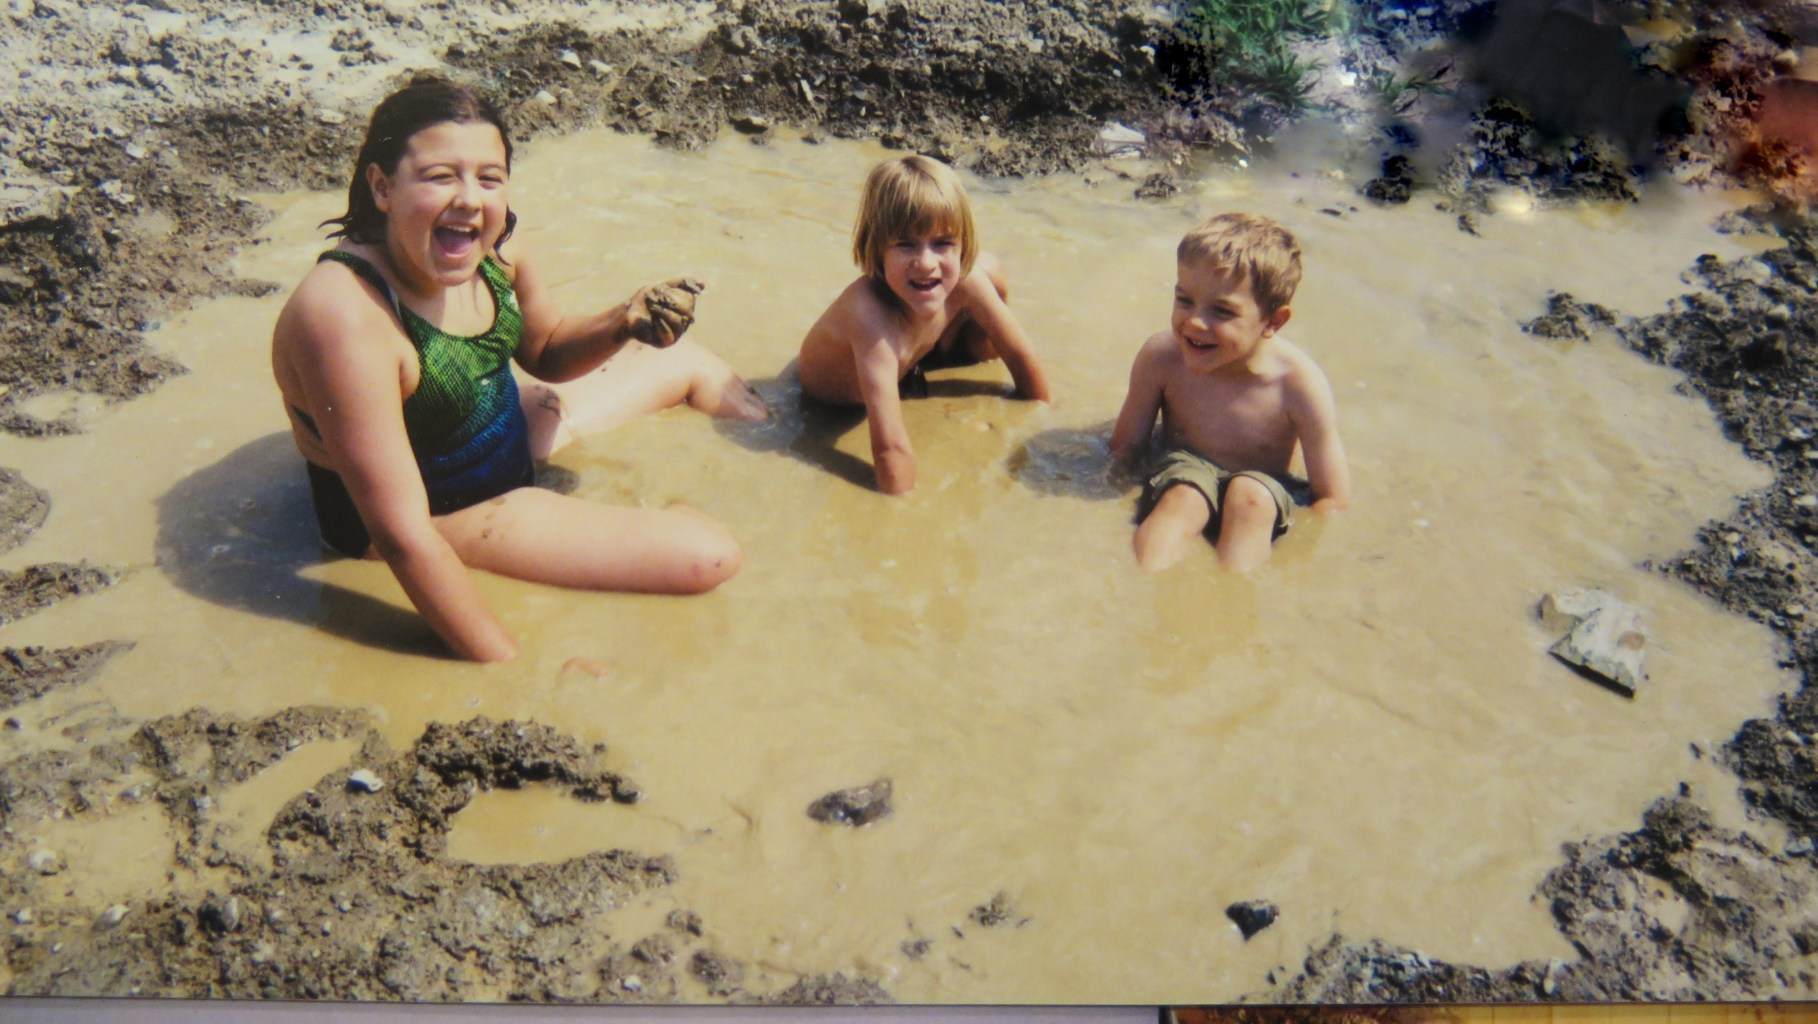 Image: Three small children delightfully sitting in a deep mud puddle